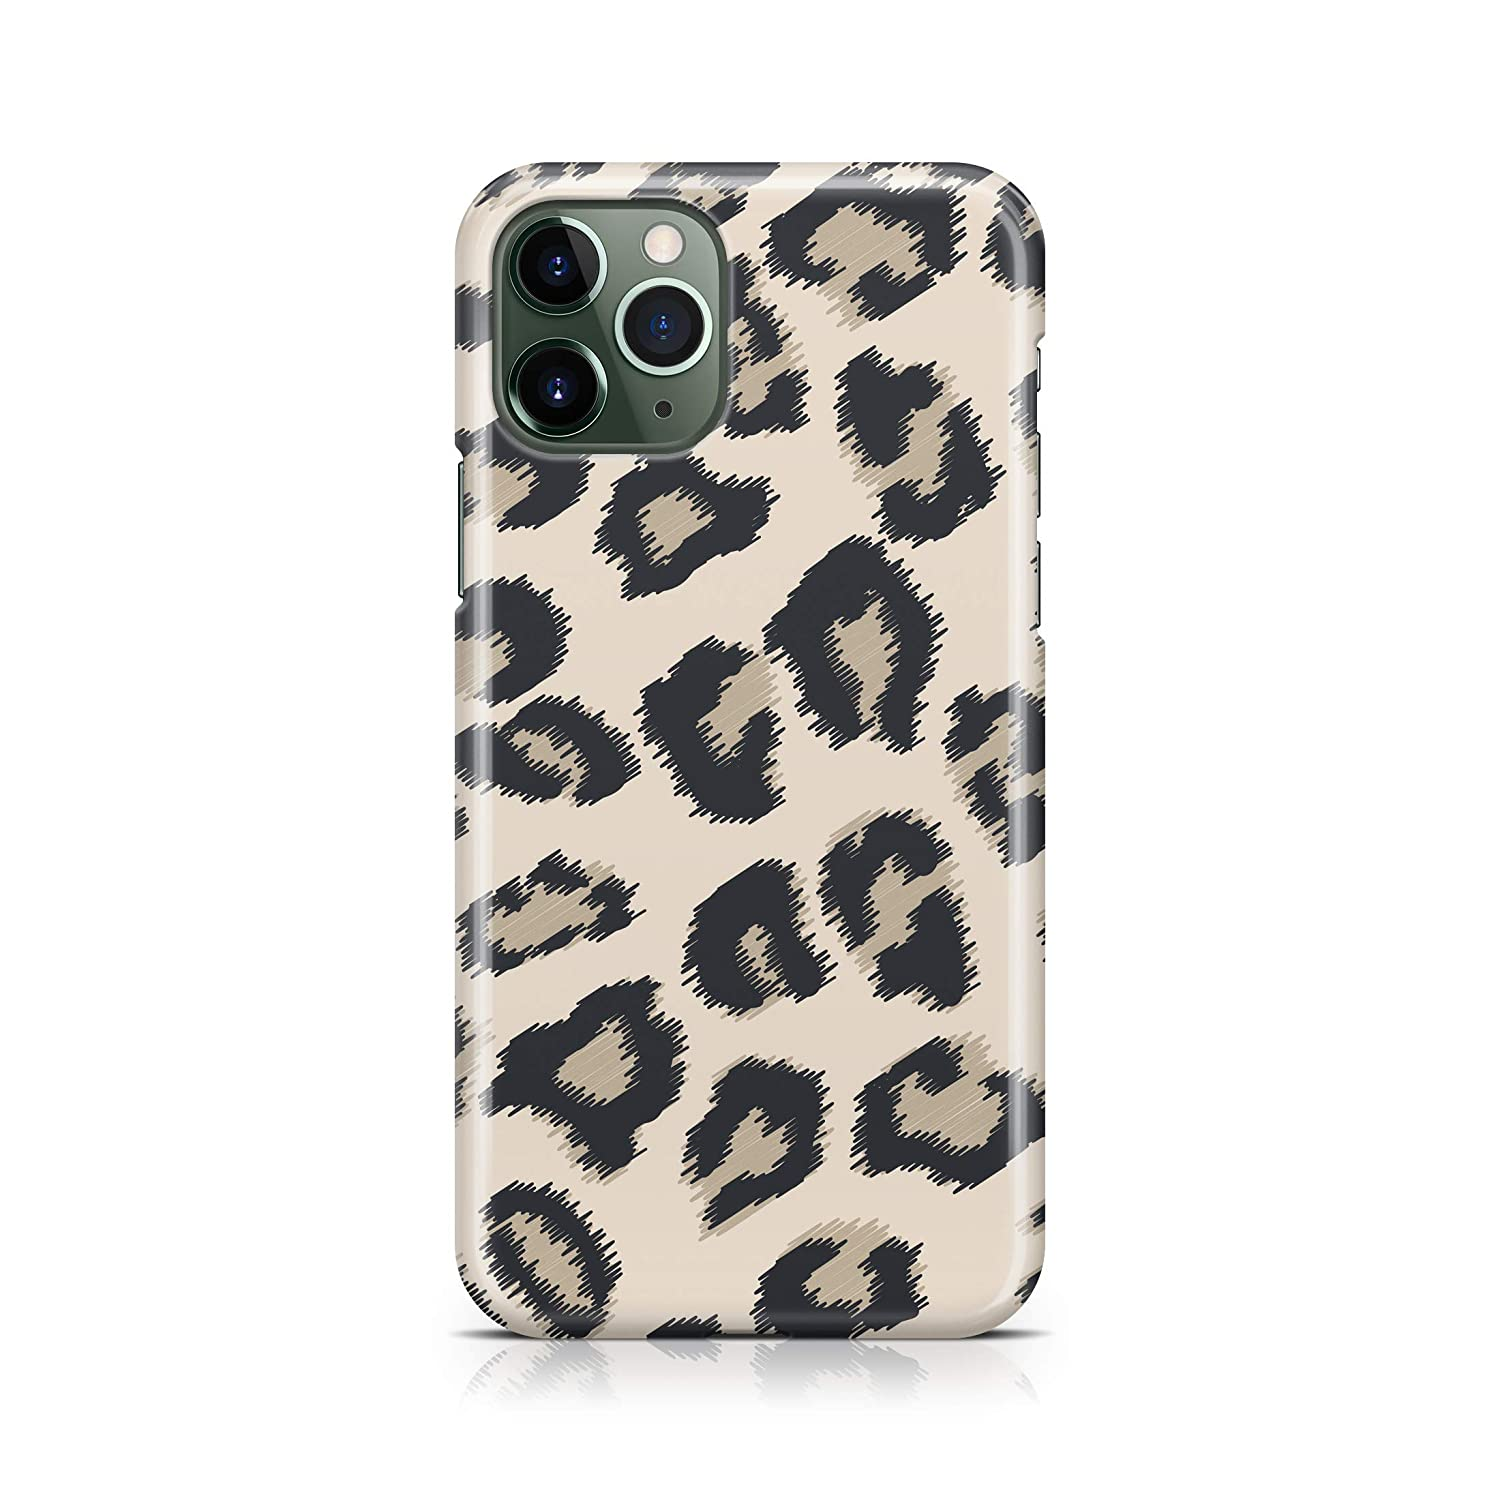 Beige Cheetah Phone Case For iPhone 11 Case Milk Leopard Pattern Protective Cover A740